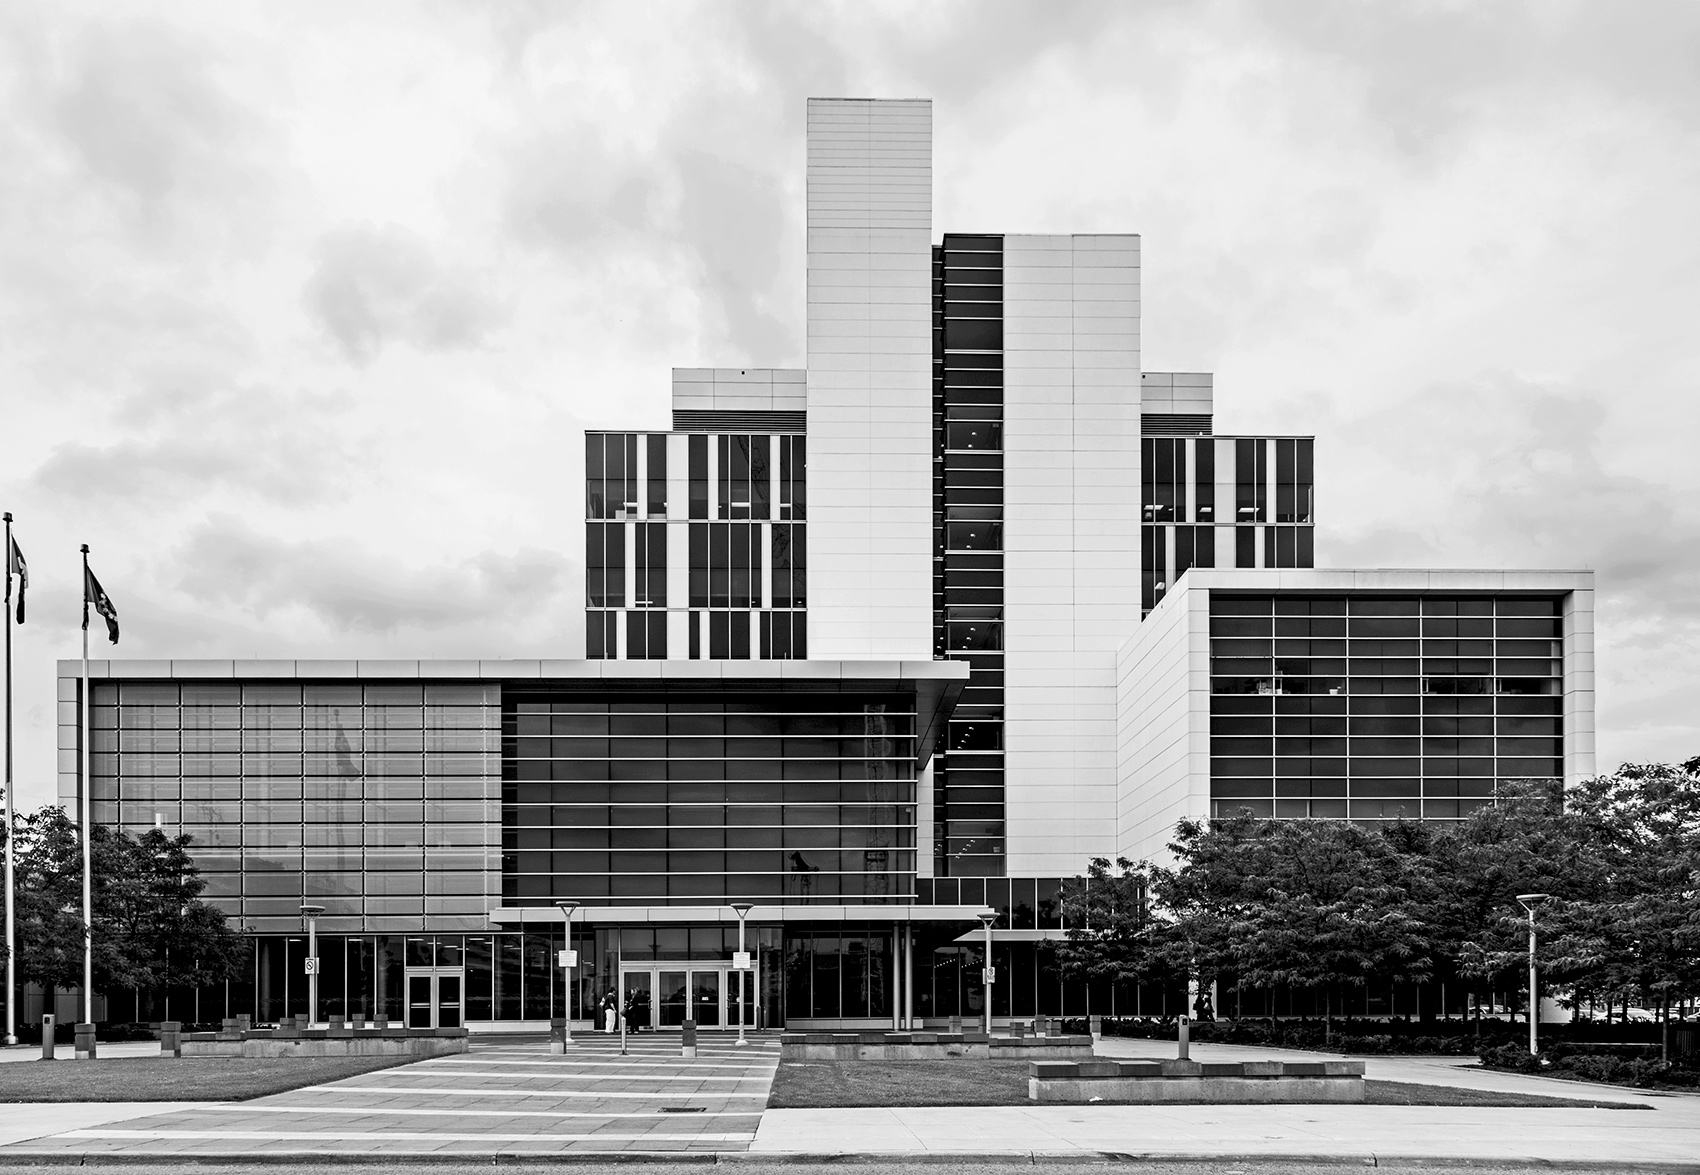 20150912. WZMH Architects' Durham Region Courthouse in Oshawa, O